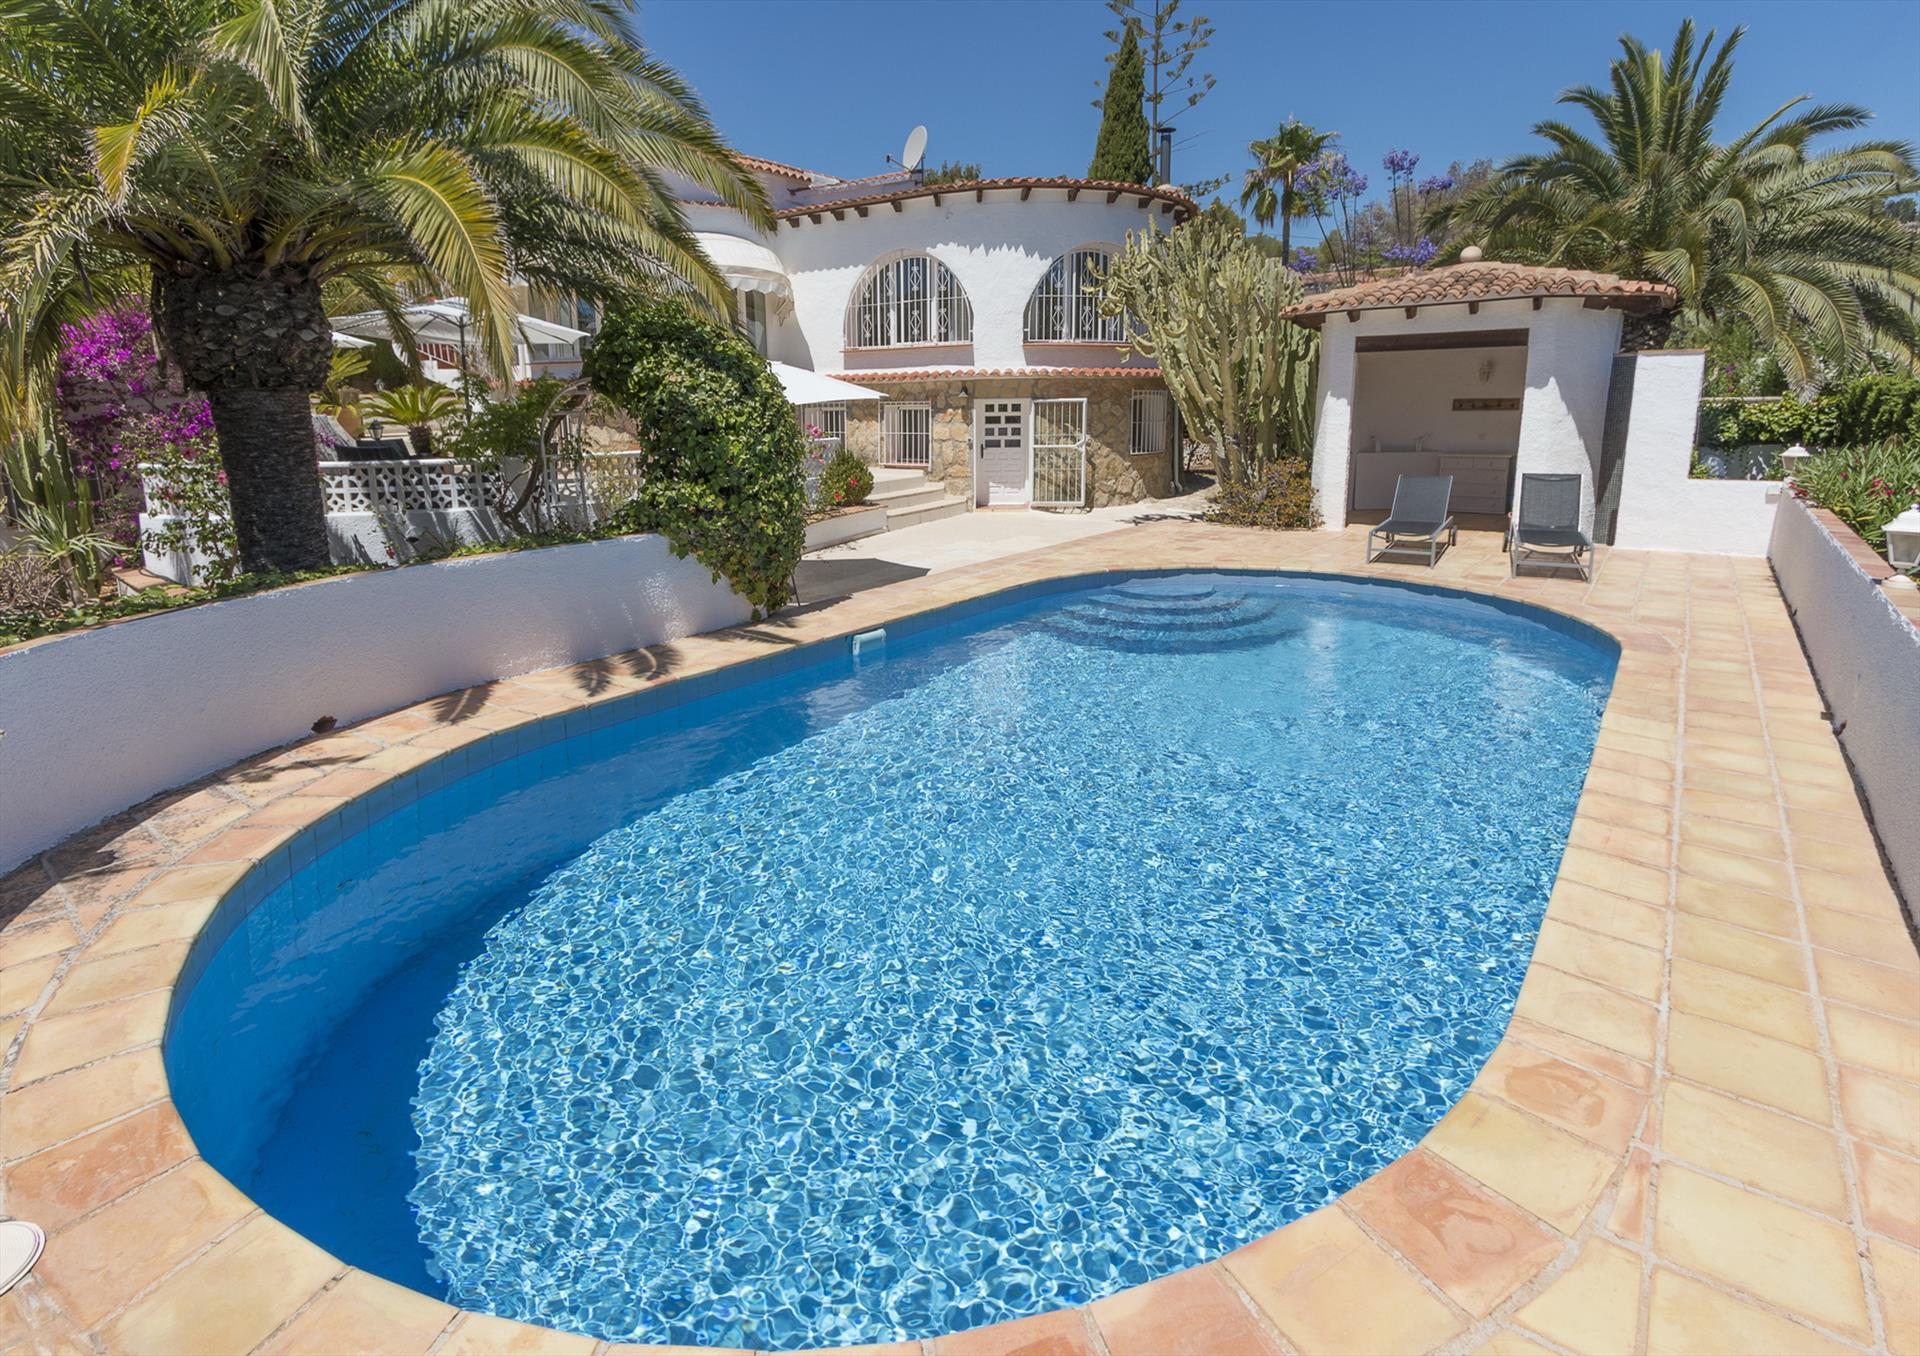 Villa Lo, Wonderful and comfortable villa in Benissa, on the Costa Blanca, Spain  with private pool for 6 persons.....